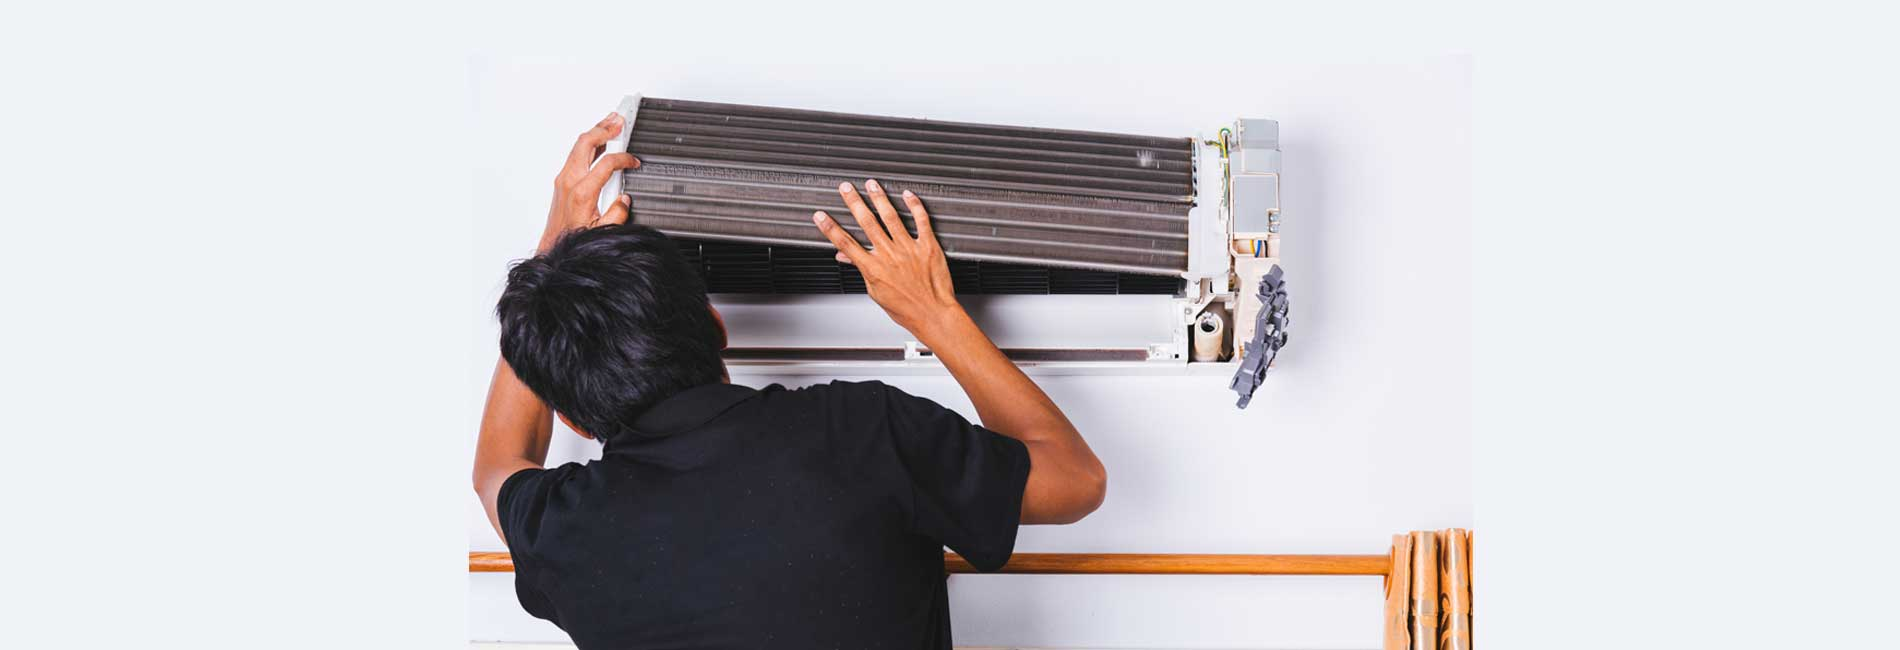 Panasonic AC Installation in Nemilichery